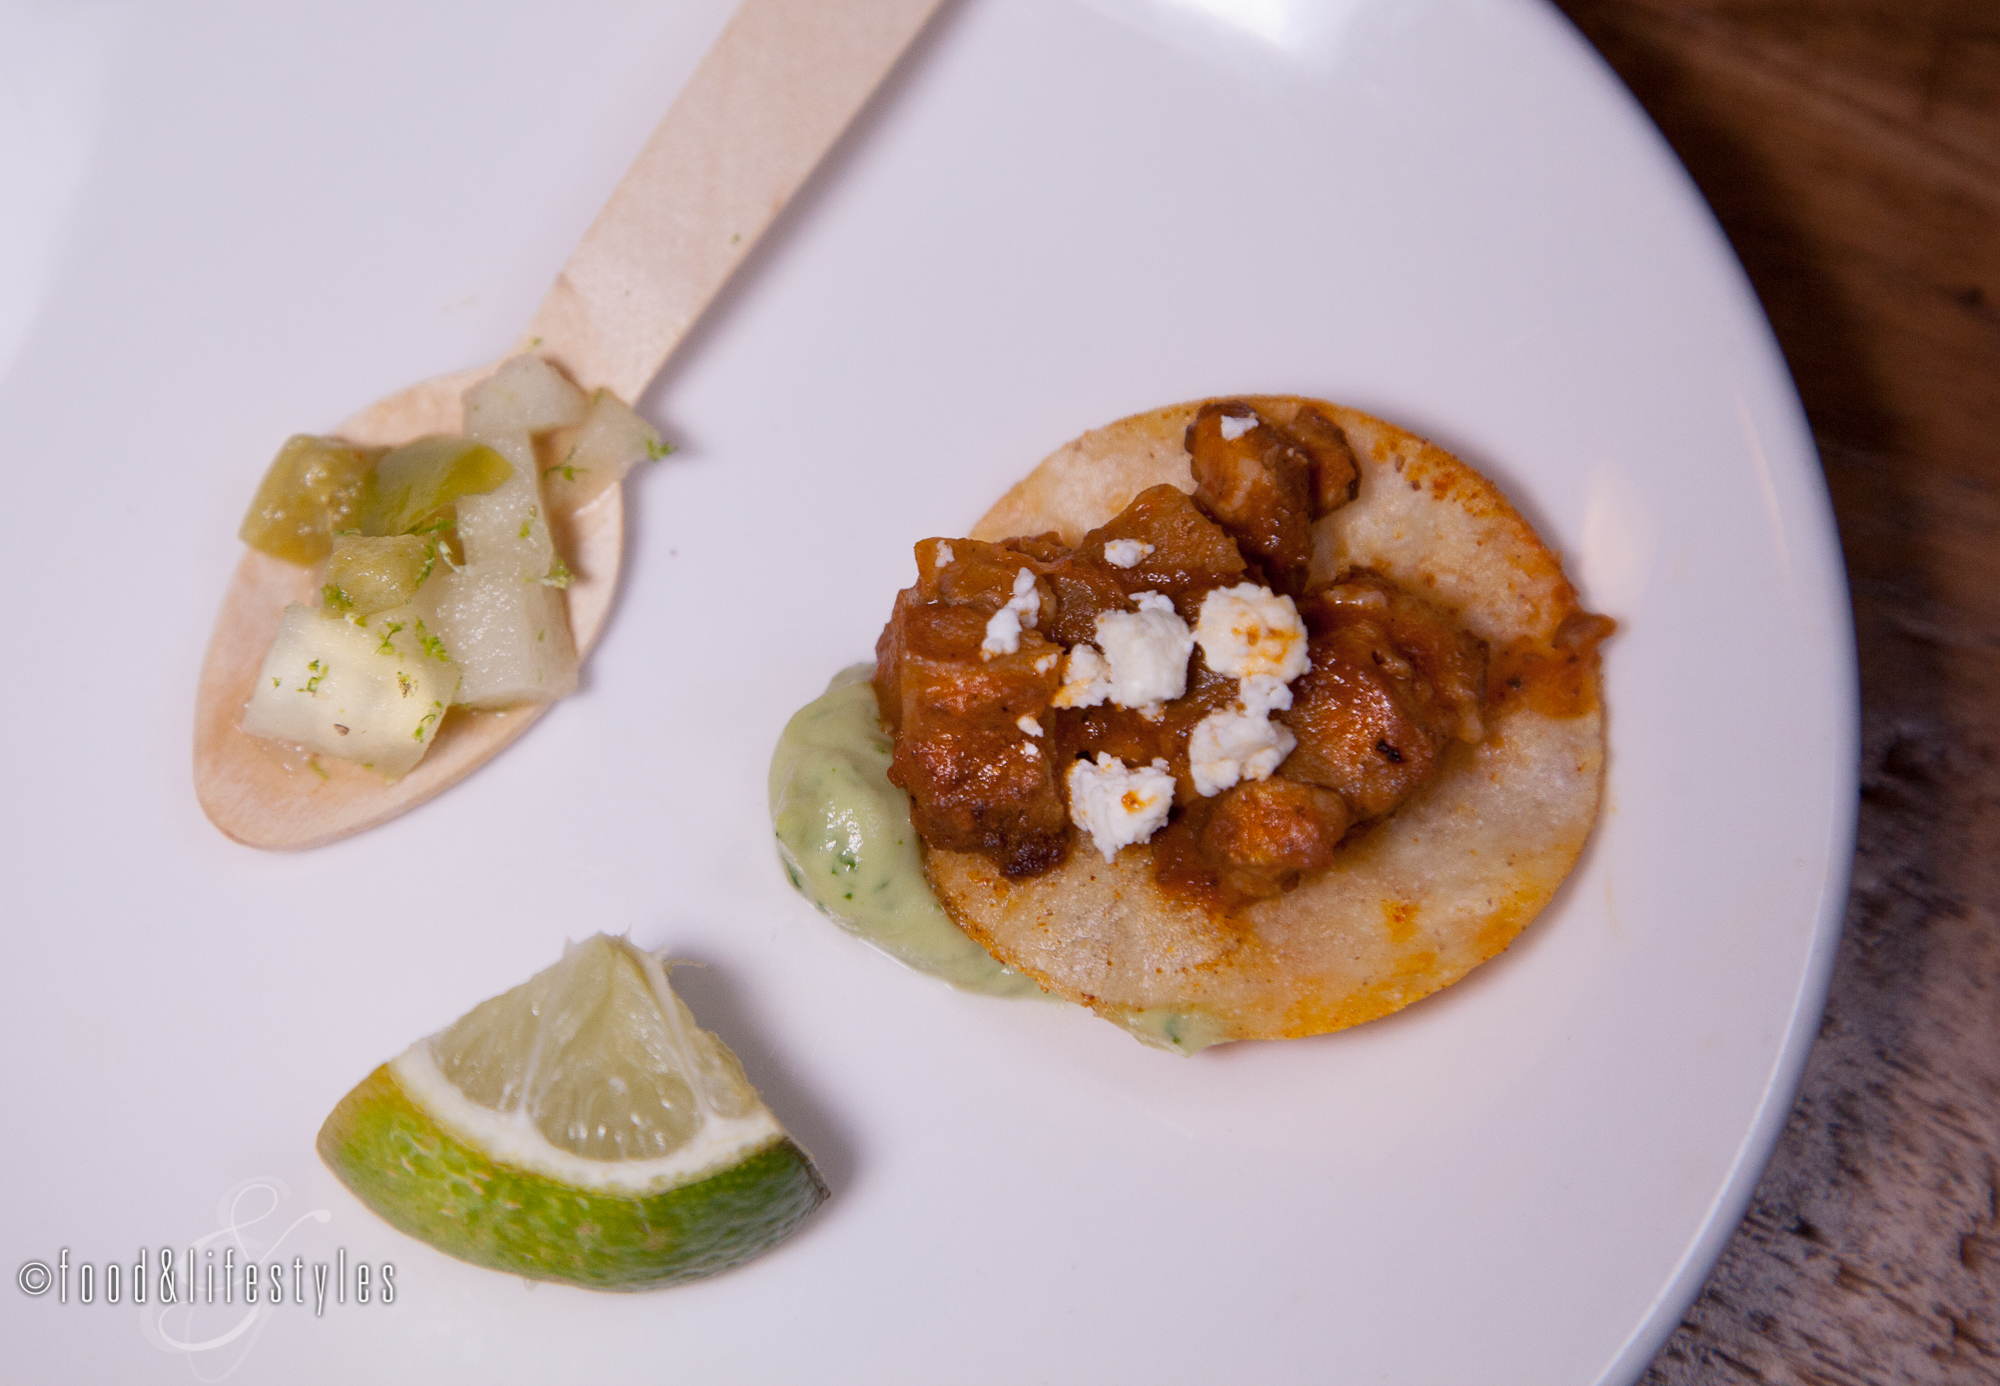 Lamb tostadas with smoked goat cheese and  tomatillo-apple salsa